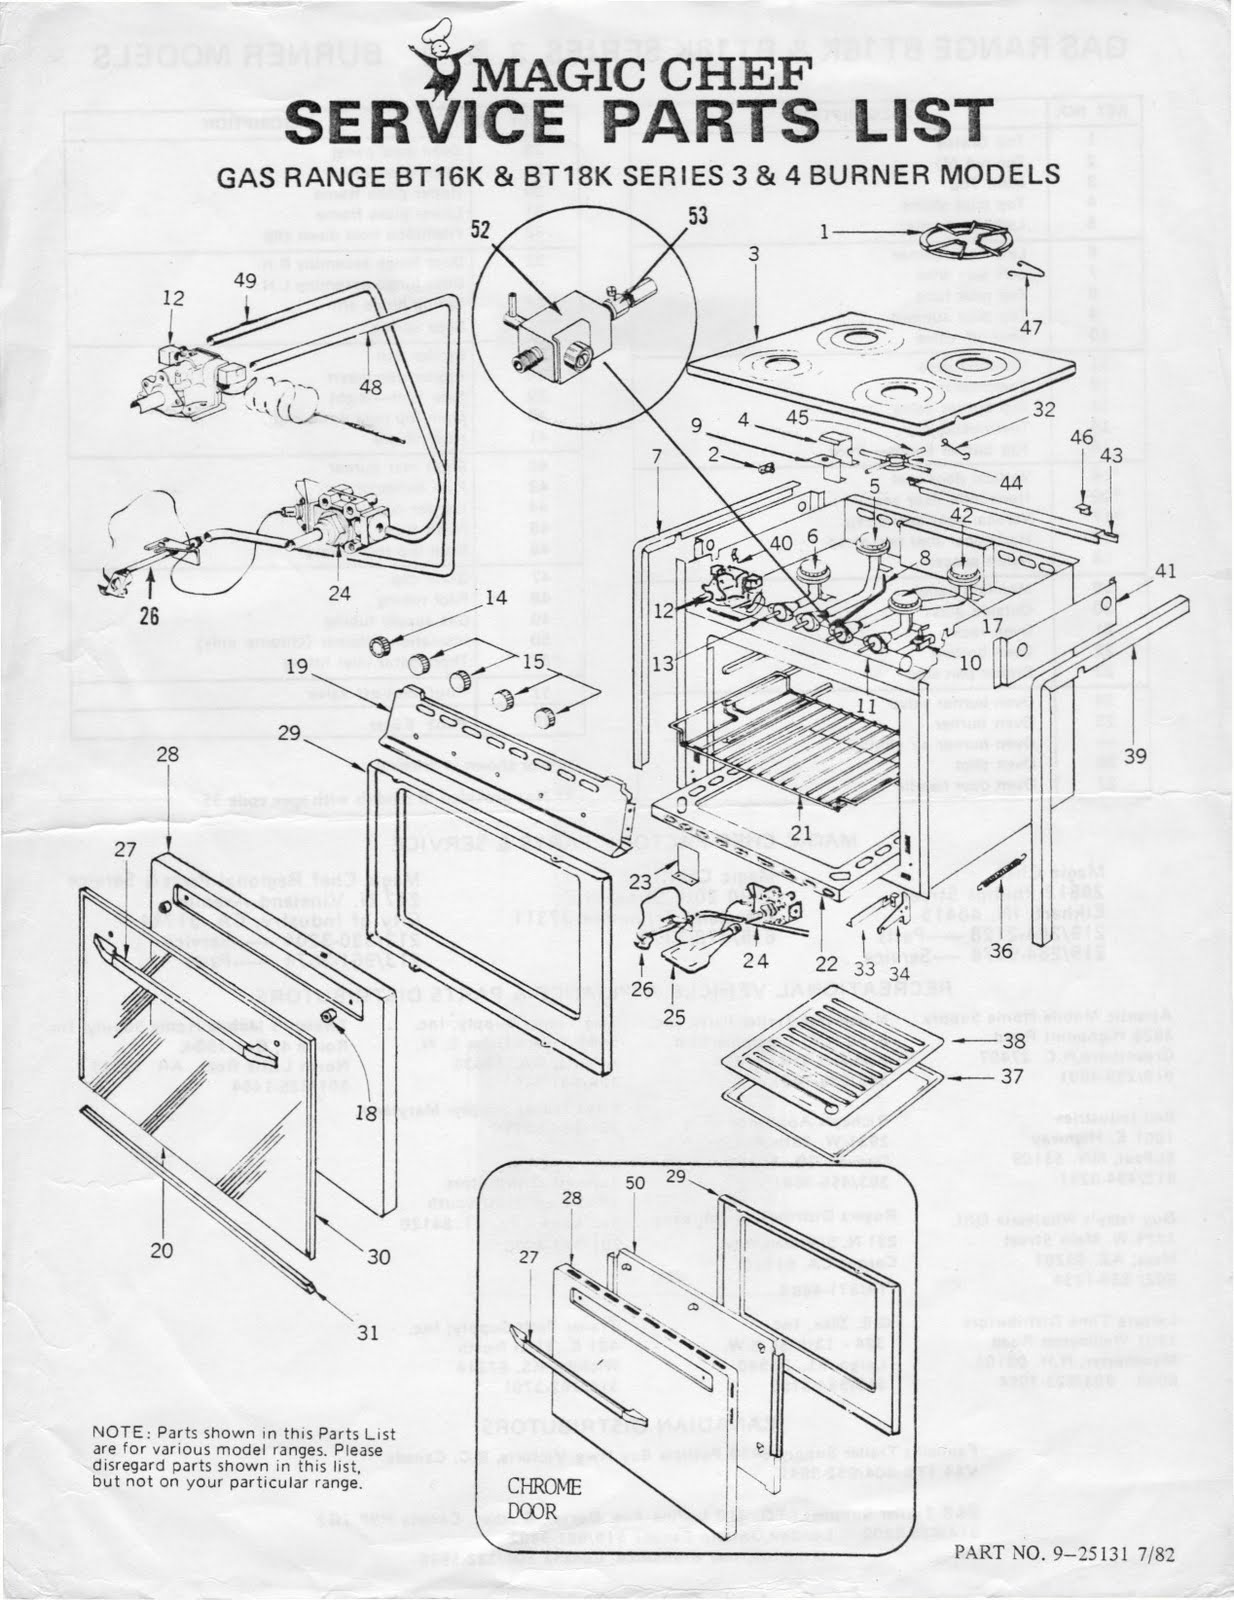 wiring diagram 1999 pace arrow vision  wiring  free engine image for user manual download